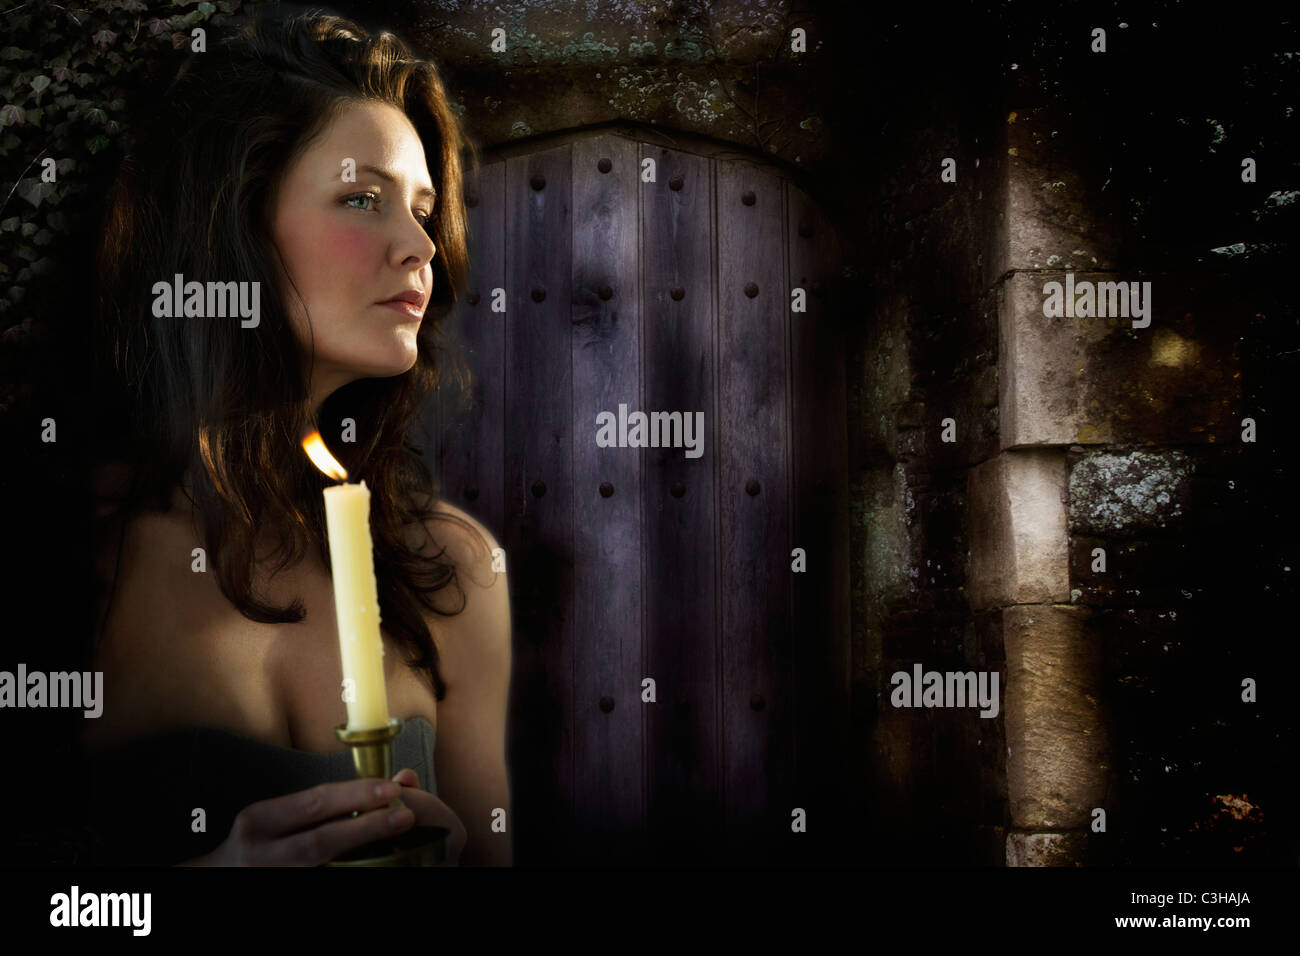 Woman with candle at night - Stock Image